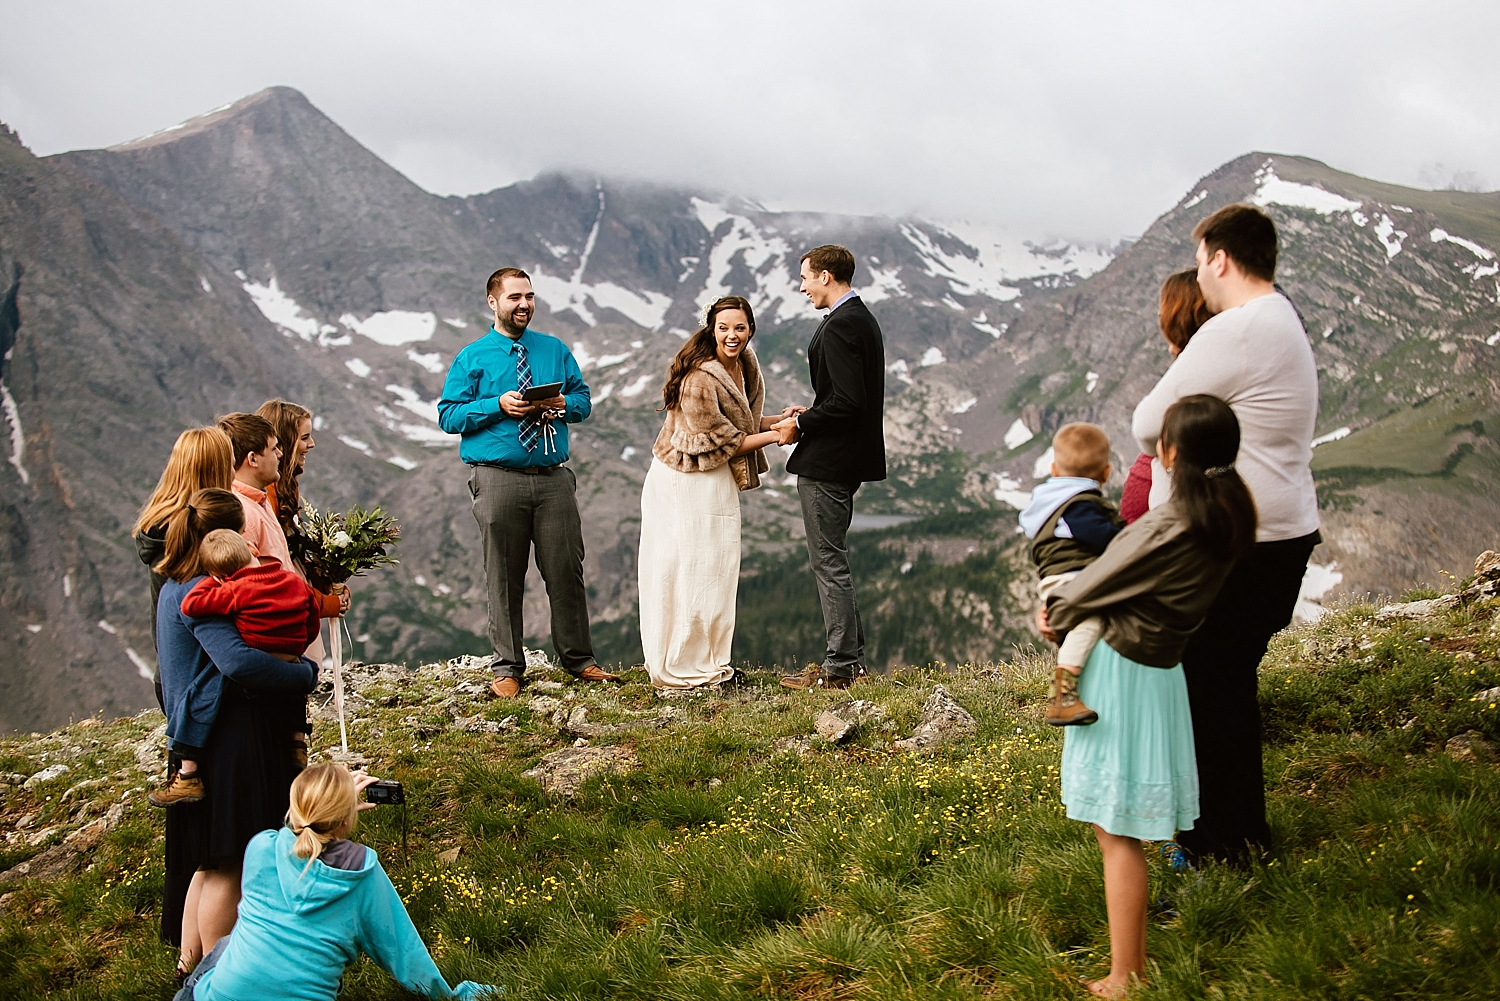 Jessica and Edward celebrated their marriage in RMNP, Estes Park, Colorado with a beautiful and intimate elopement on Trail Ridge Road! I absolutely love this small mountain wedding! | Colorado mountain elopement photos by mountain wedding photographer, Maddie Mae.